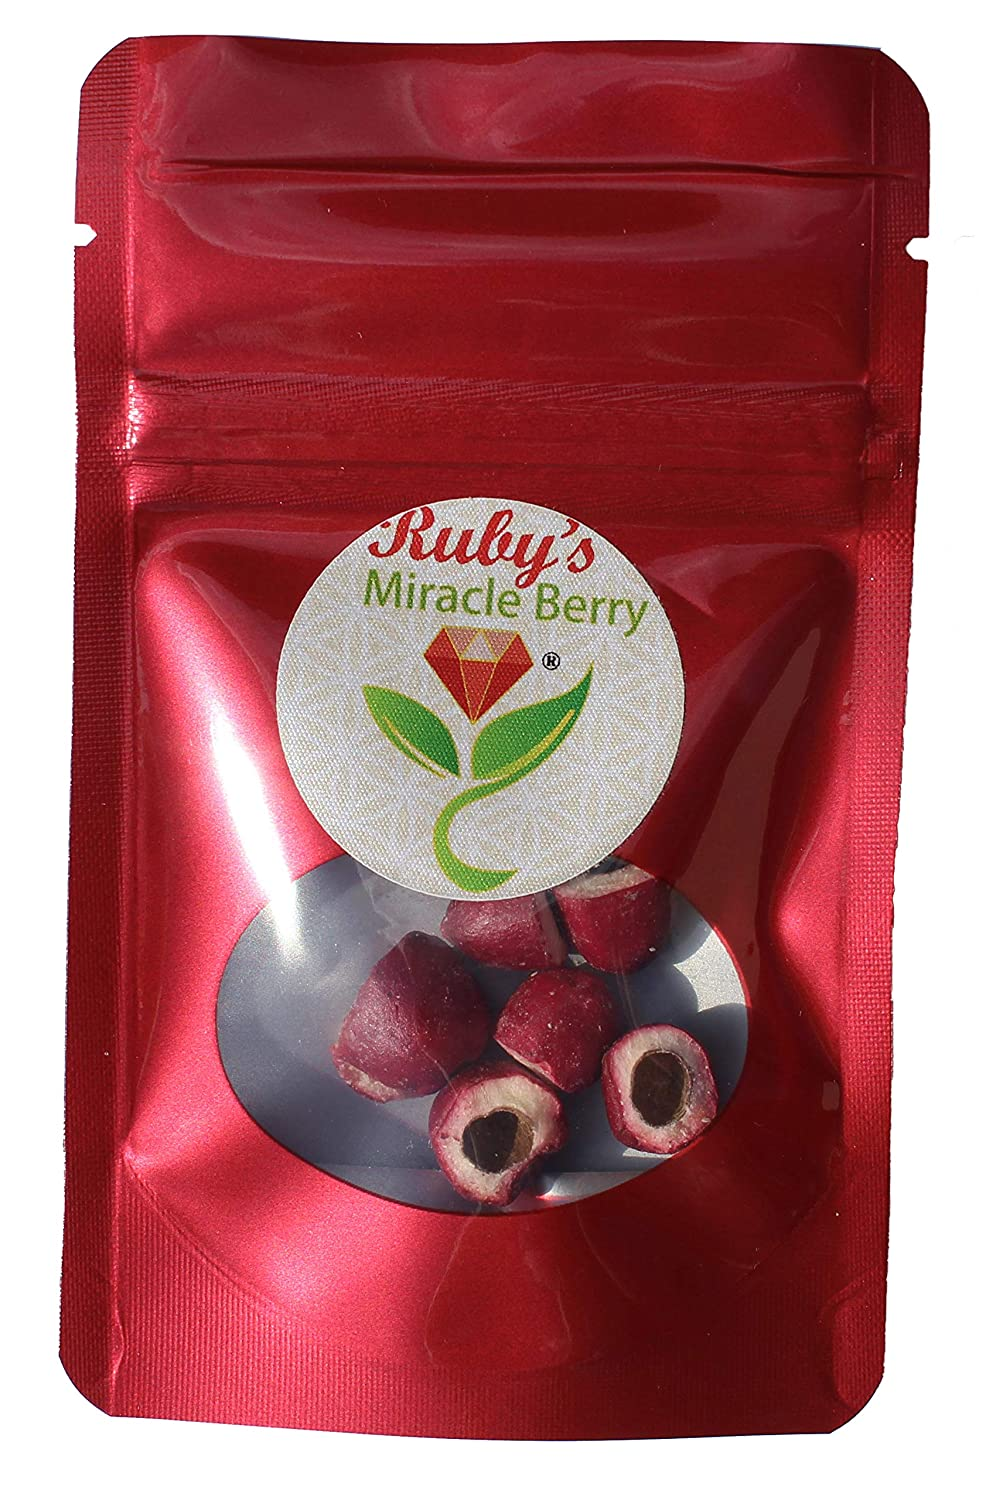 Ruby's Miracle Berry - The Flavor Changing Berry | 6 Servings | 3 Berries sliced & deseeded | 15-30 Mins Each